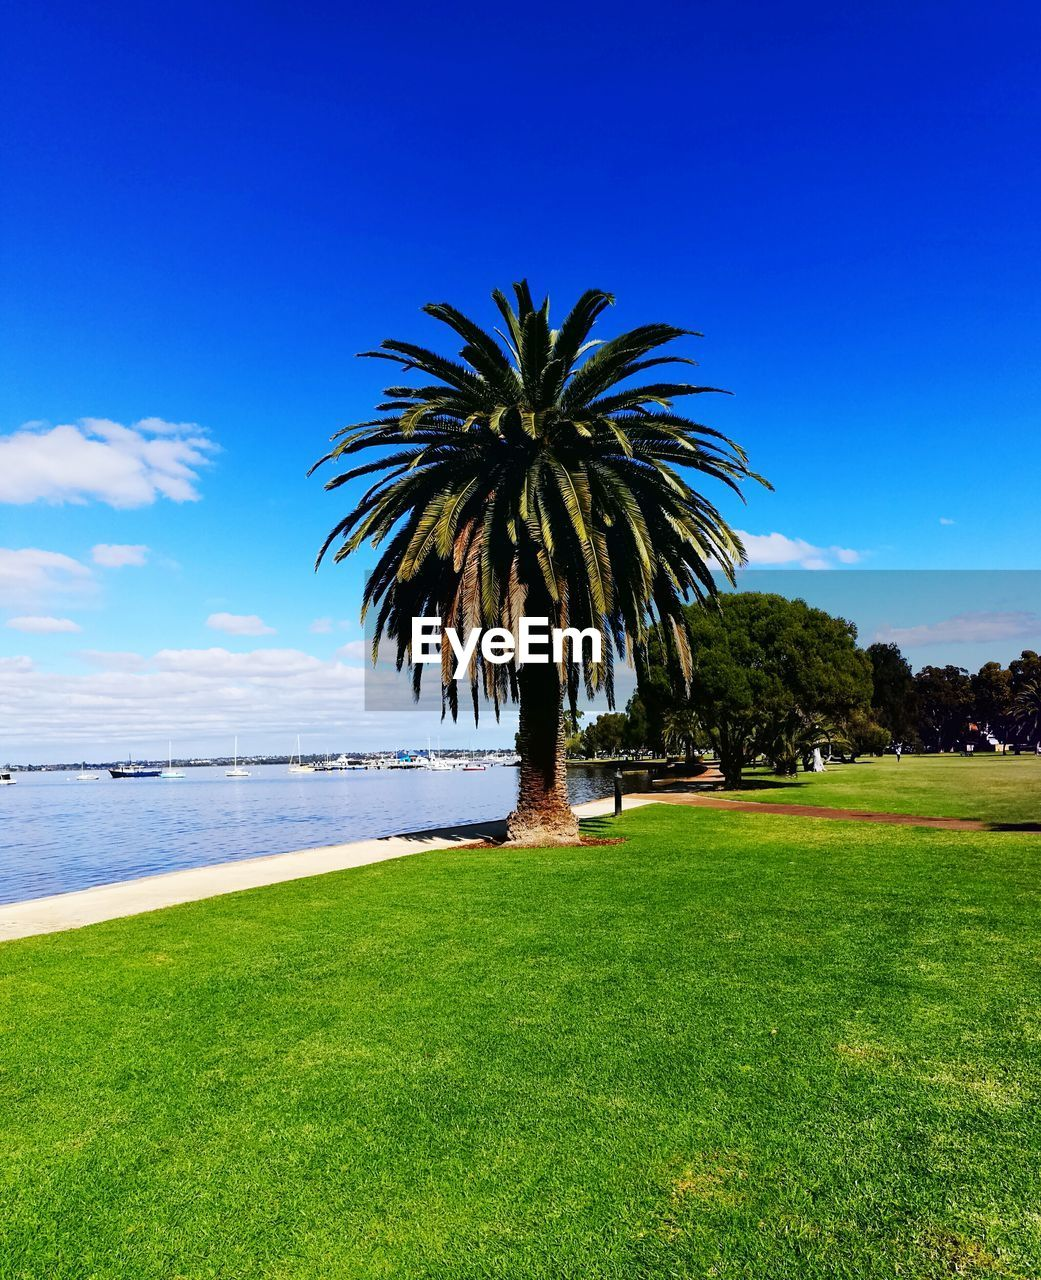 grass, nature, green color, scenics, tree, palm tree, beauty in nature, tranquil scene, sea, day, field, outdoors, tranquility, growth, sky, no people, water, landscape, clear sky